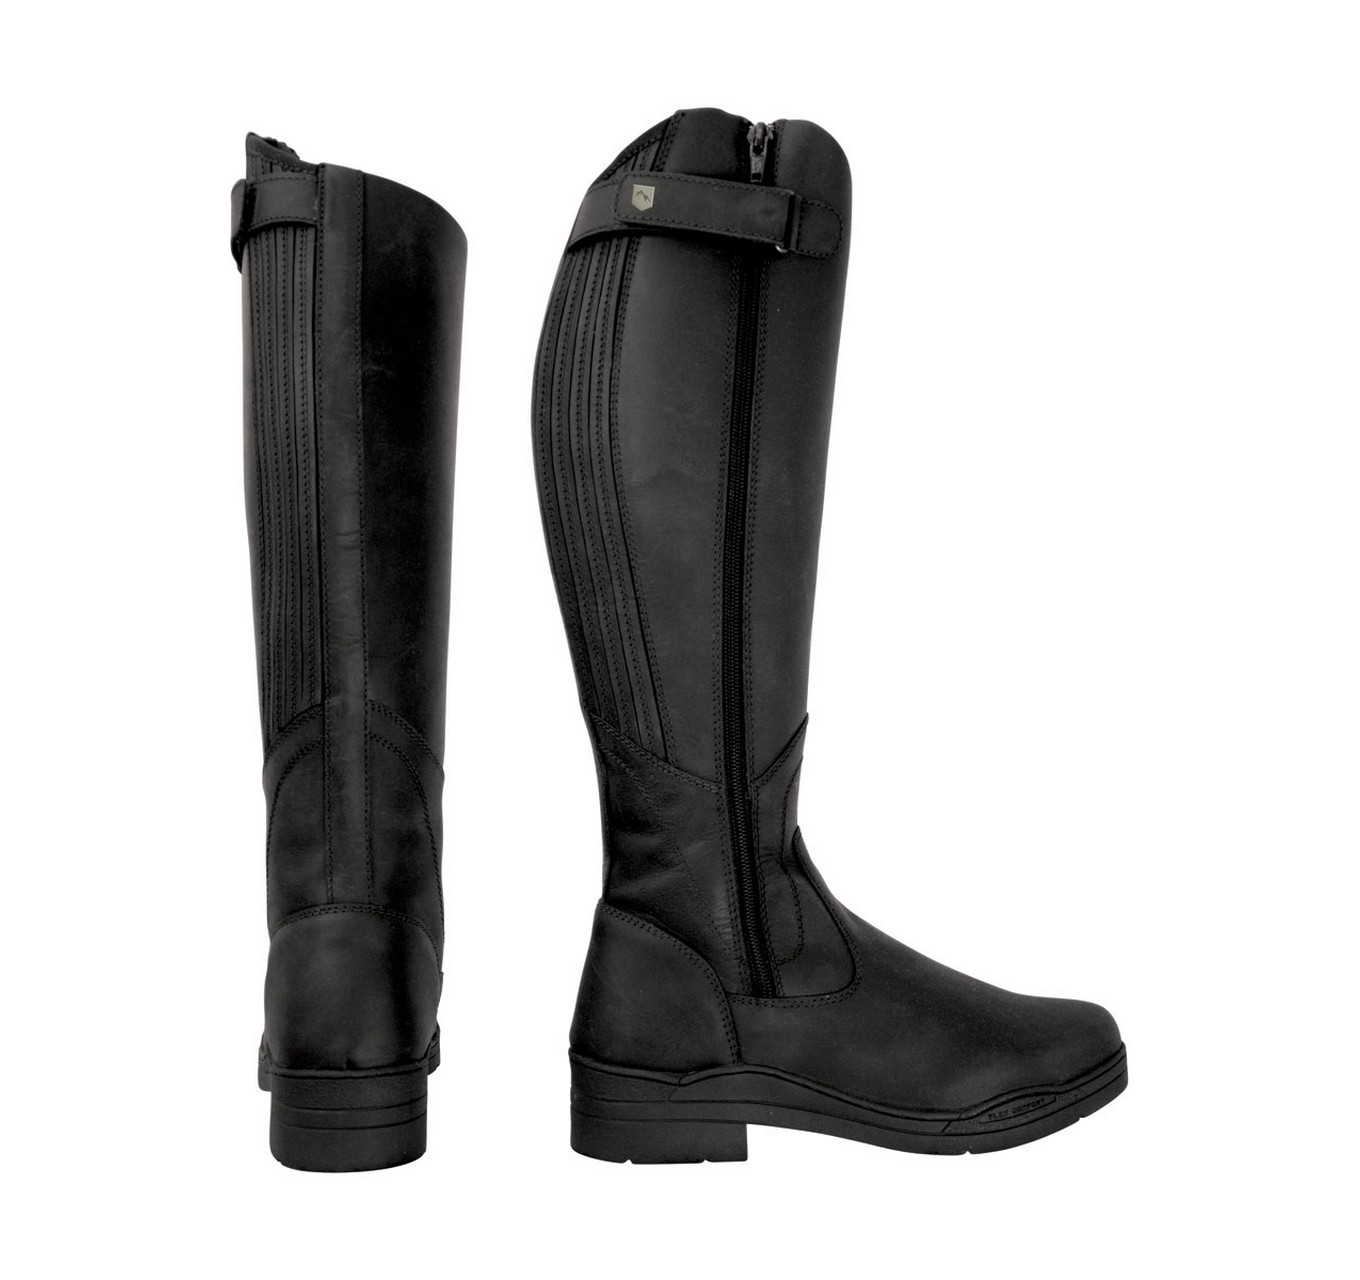 Londonderry Boots Black 41